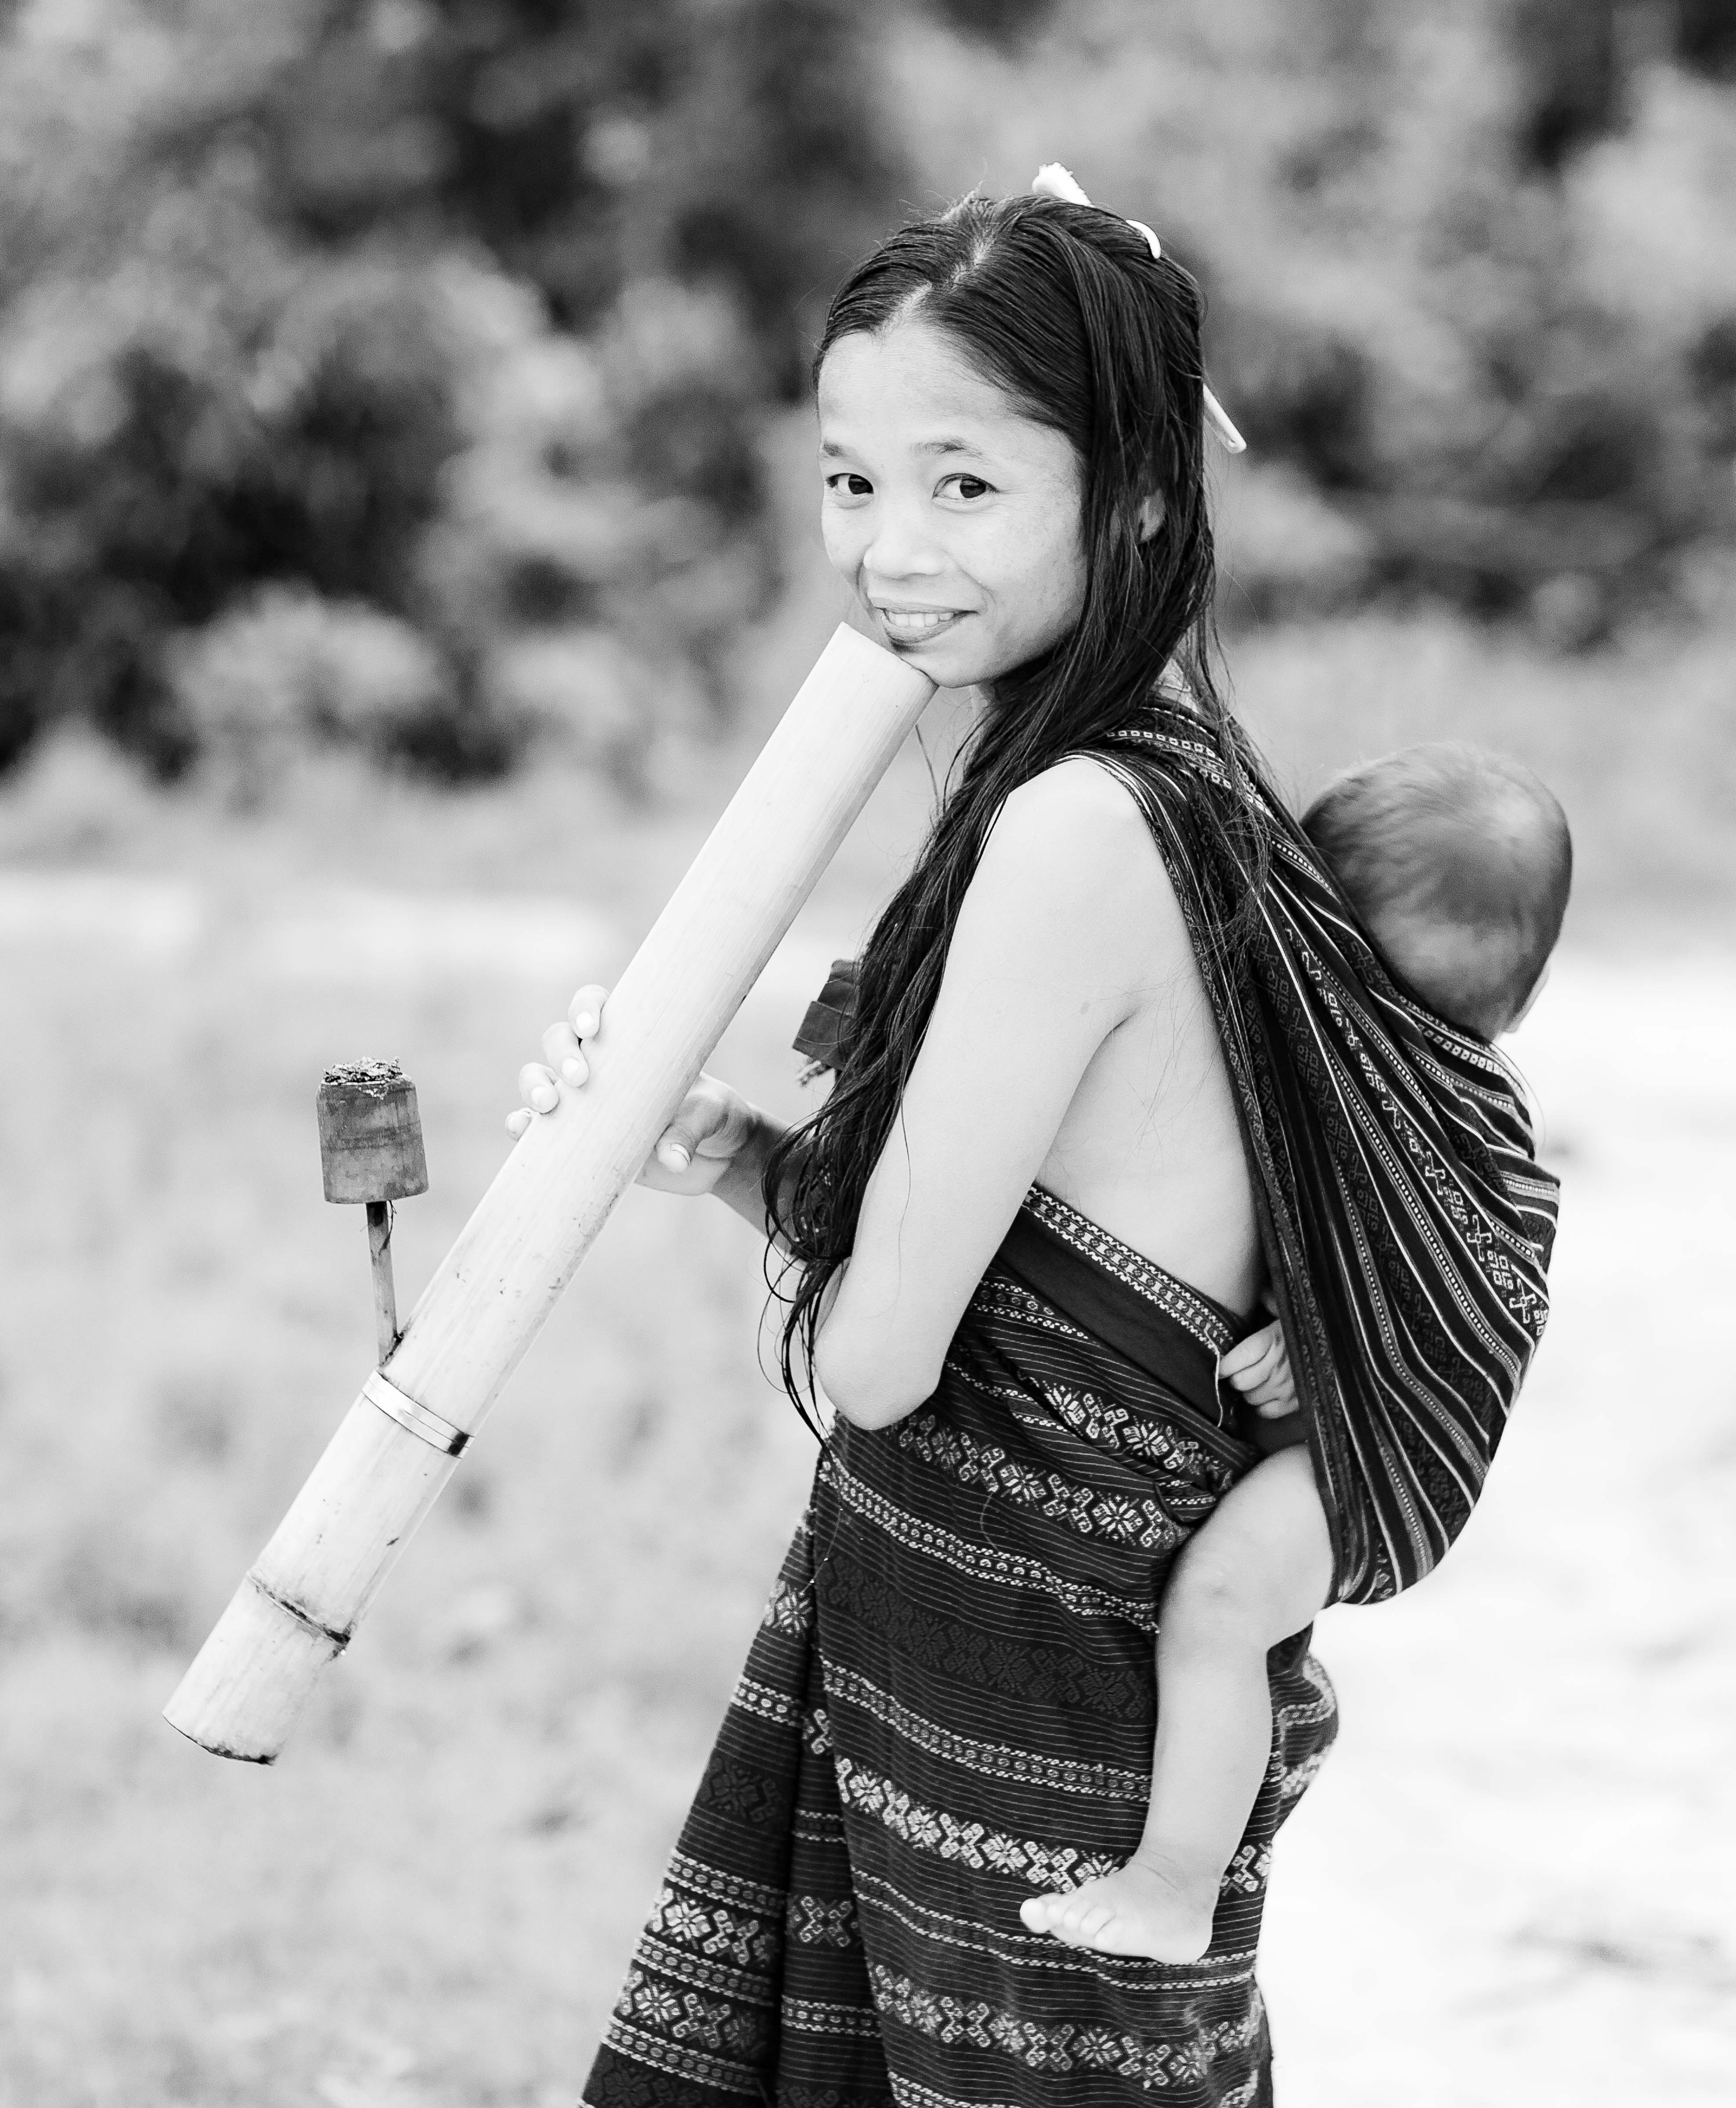 Laos, Xekong Prov, Woman With Pipe And Child, 2011, IMG 3967BW